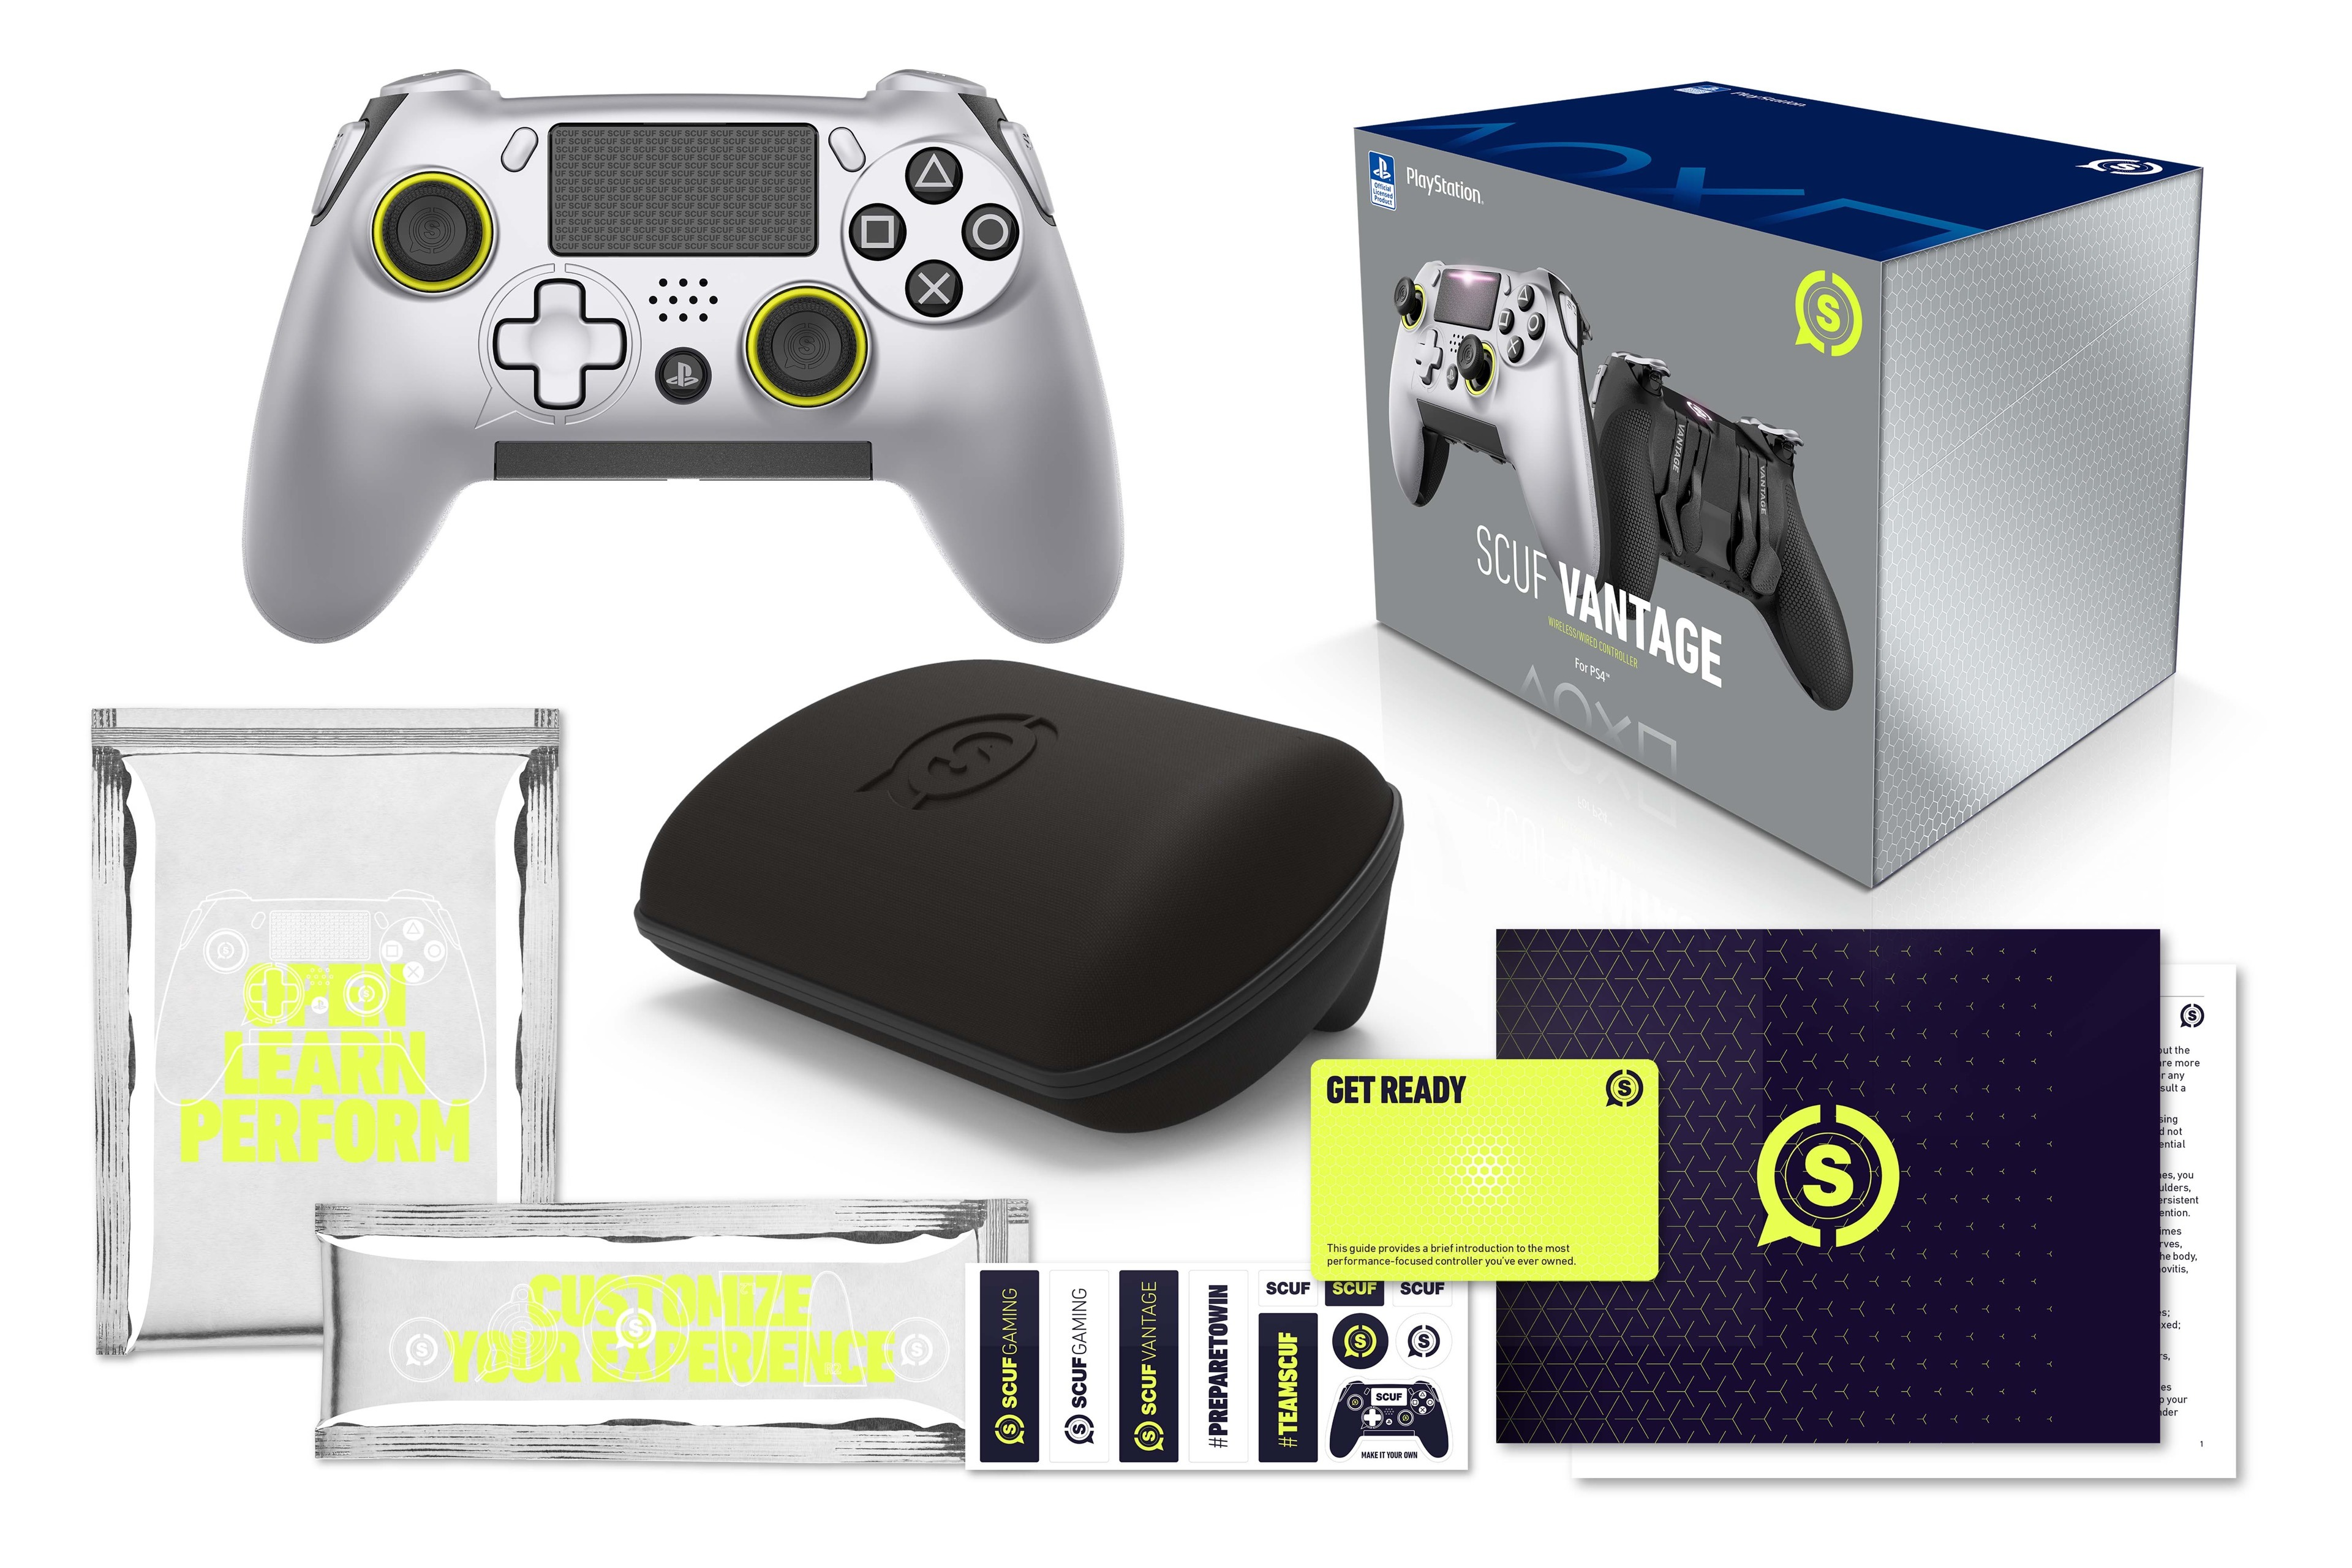 SCUF Vantage Controller Announced for PS4 with Asymmetrical